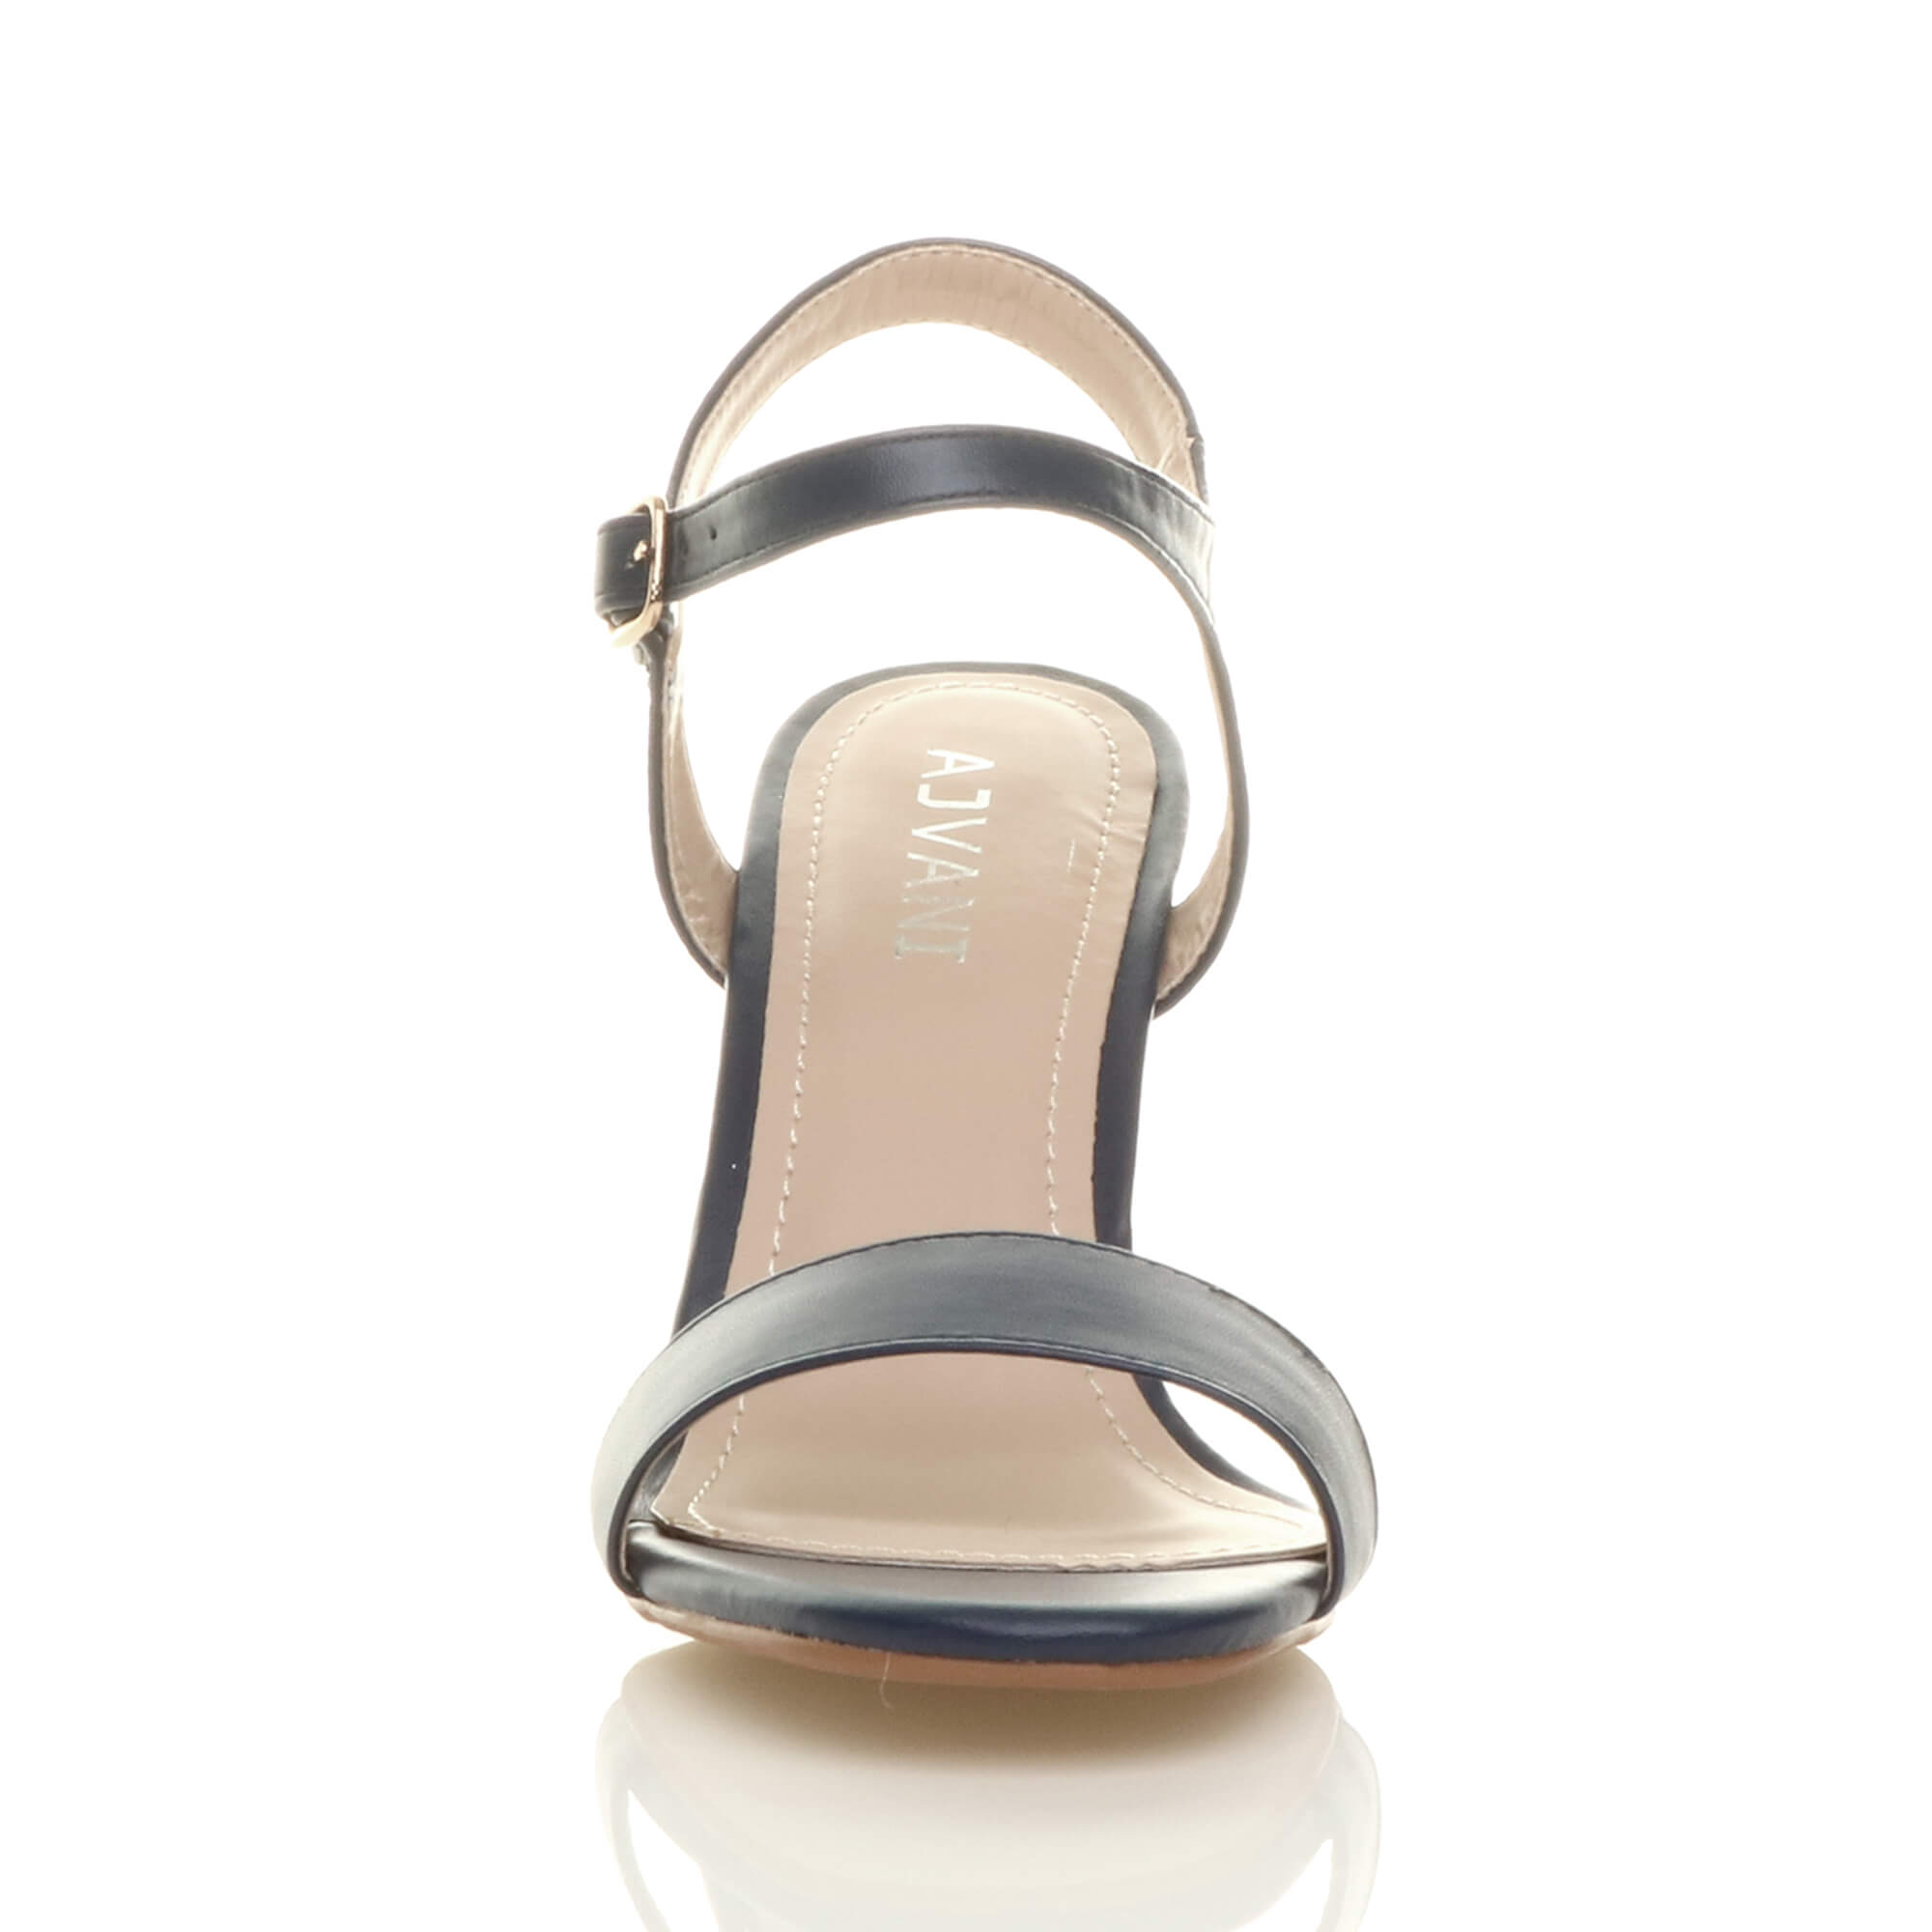 WOMENS-LADIES-HIGH-HEEL-BUCKLE-STRAPPY-BASIC-BARELY-THERE-SANDALS-SHOES-SIZE thumbnail 69